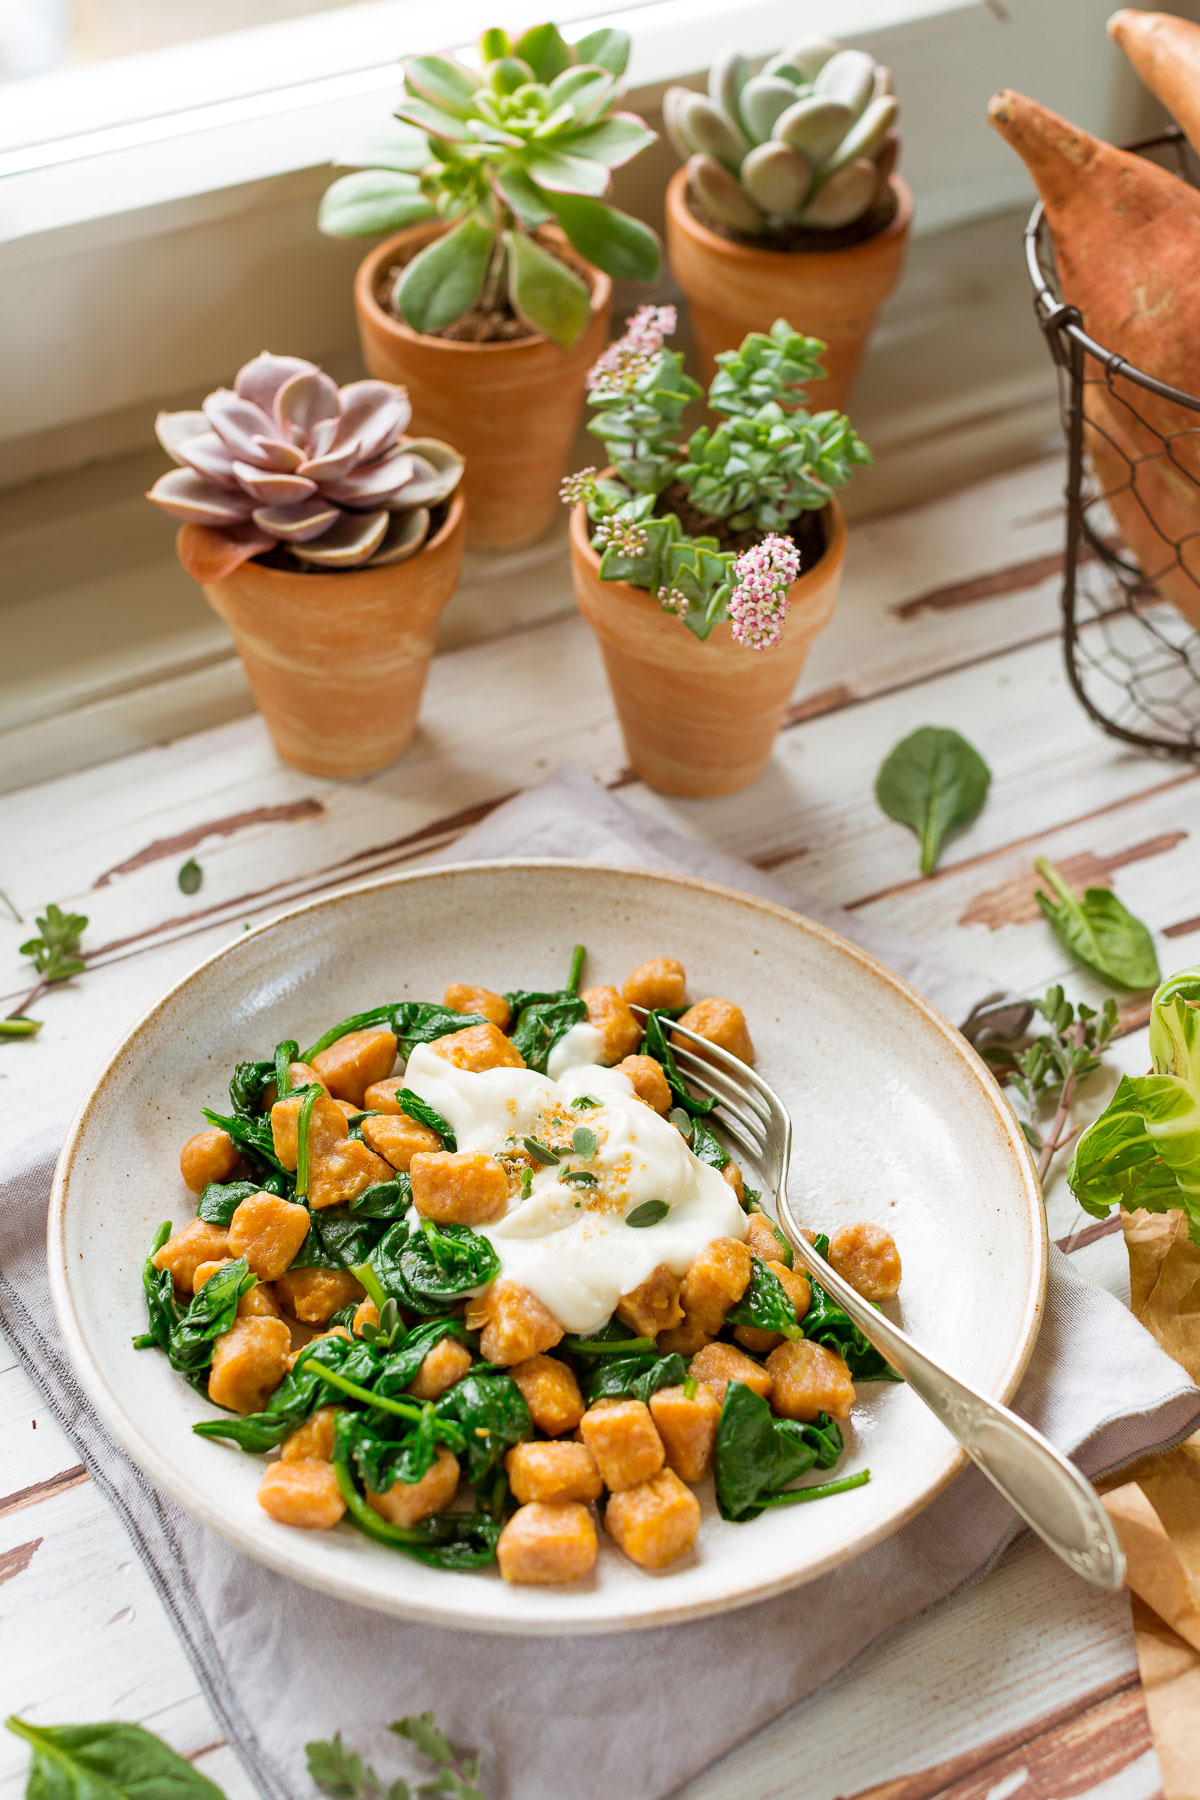 vegan SWEET POTATO GNOCCHI with CAULIFLOWER SAUCE and spinach GNOCCHI DI PATATE DOLCI VEGAN di farro integrale con SALSA di CAVOLFIORE #sweetpotato #vegan #cauliflower #gnocchi